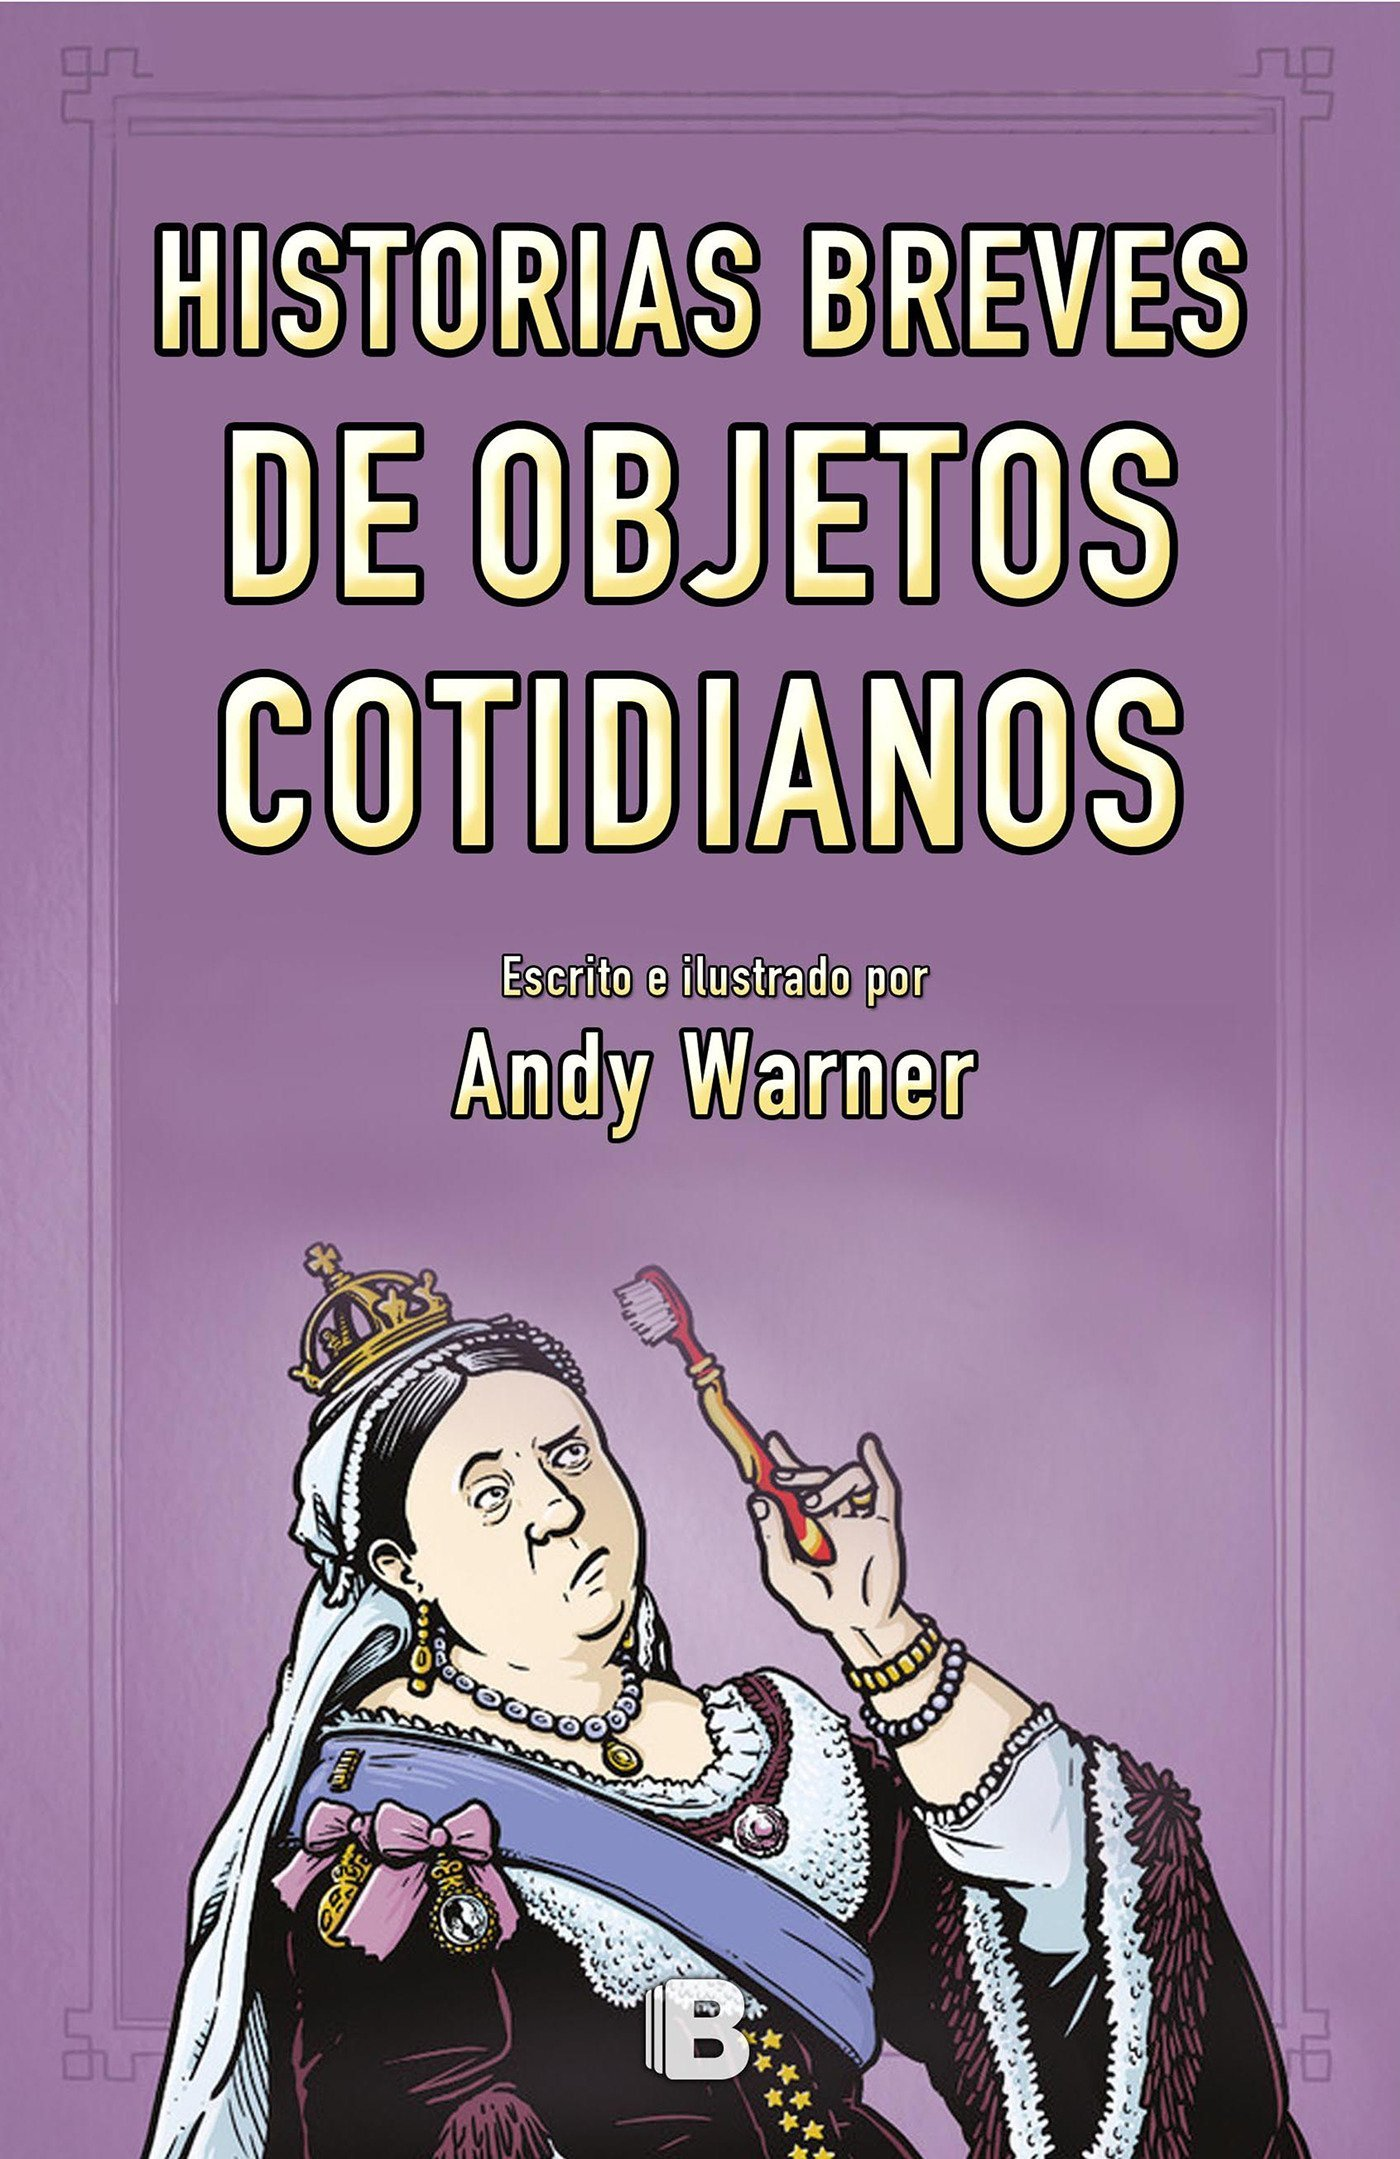 Historia breves de objetos cotidianos / Brief Histories of Everyday Objects (Spanish Edition): Andy Warner: 9788466661799: Amazon.com: Books